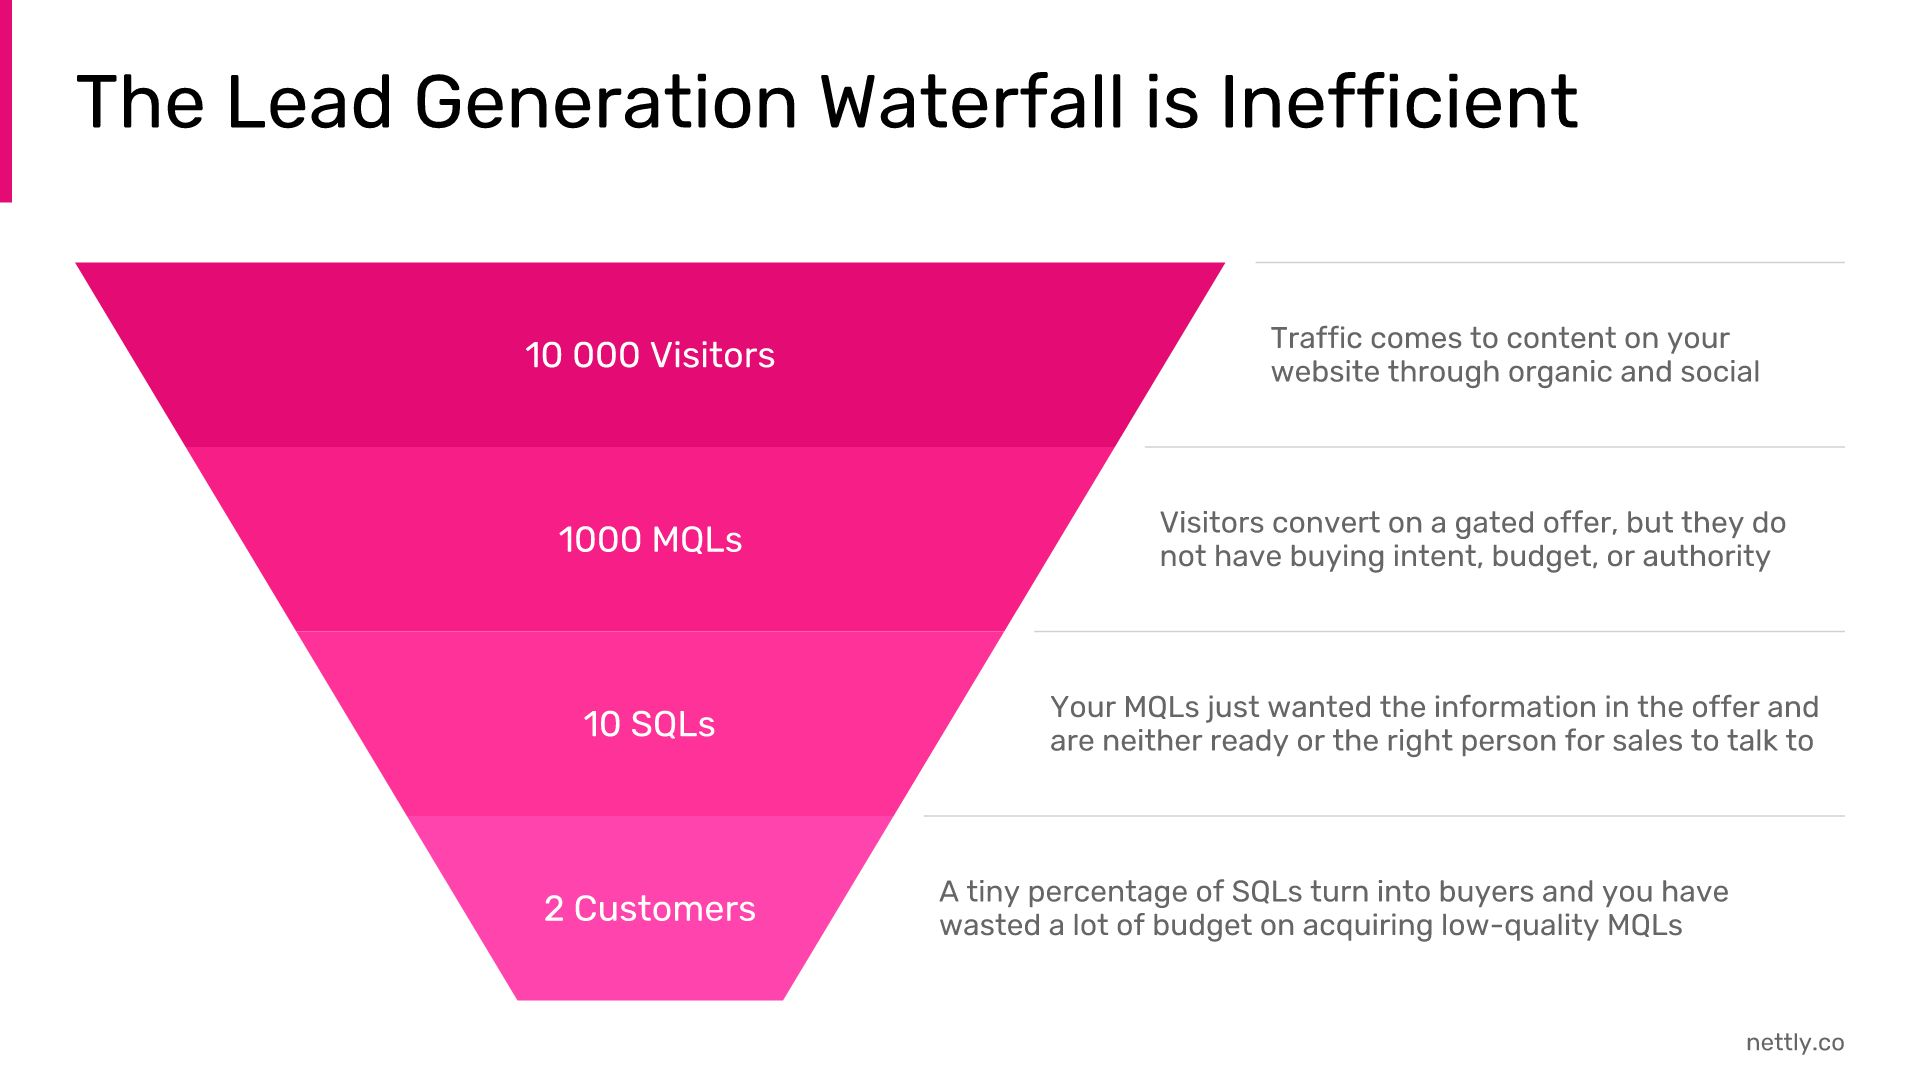 lead-generation-waterfall-inefficient